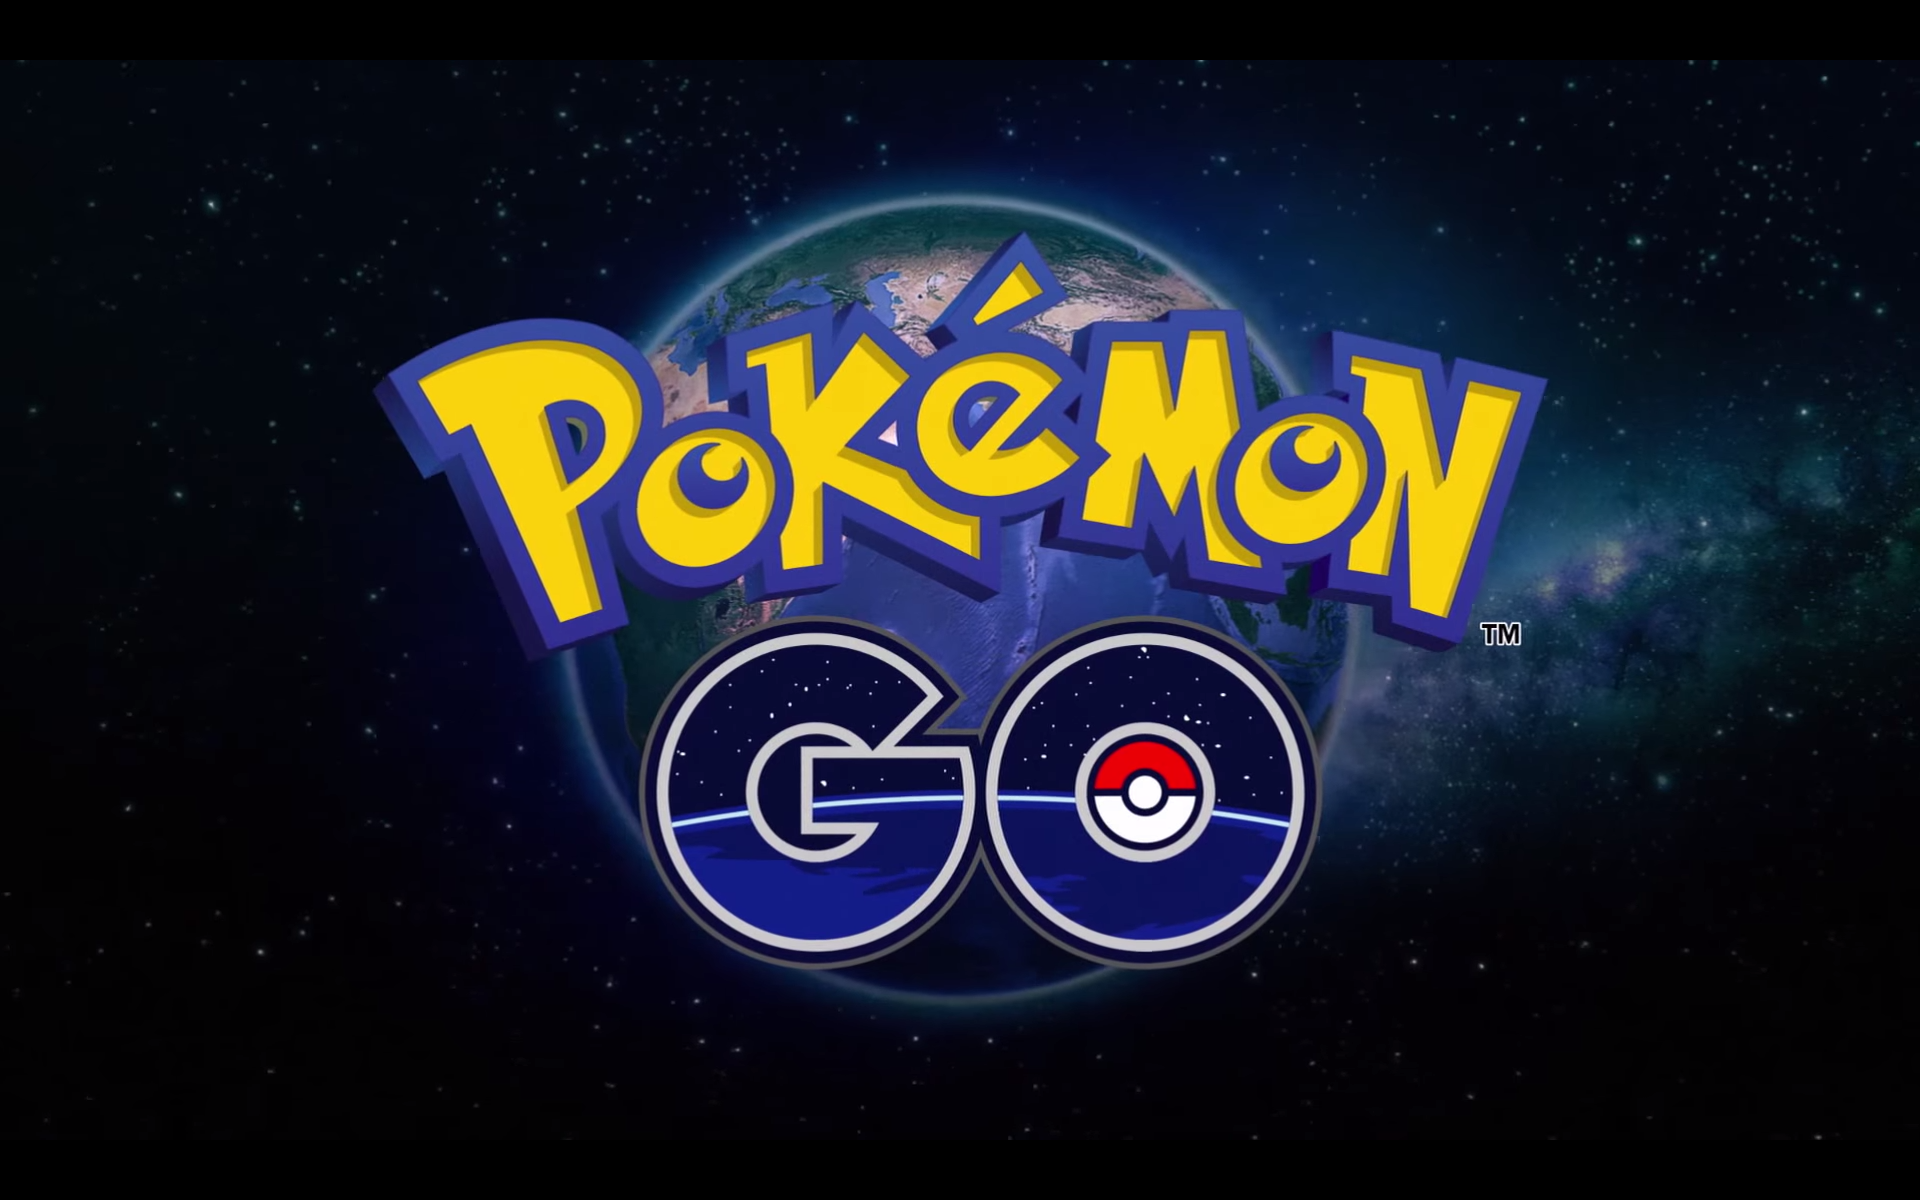 Photo of the childhood dream come true: We can soon catch Pokémon in a stratified reality